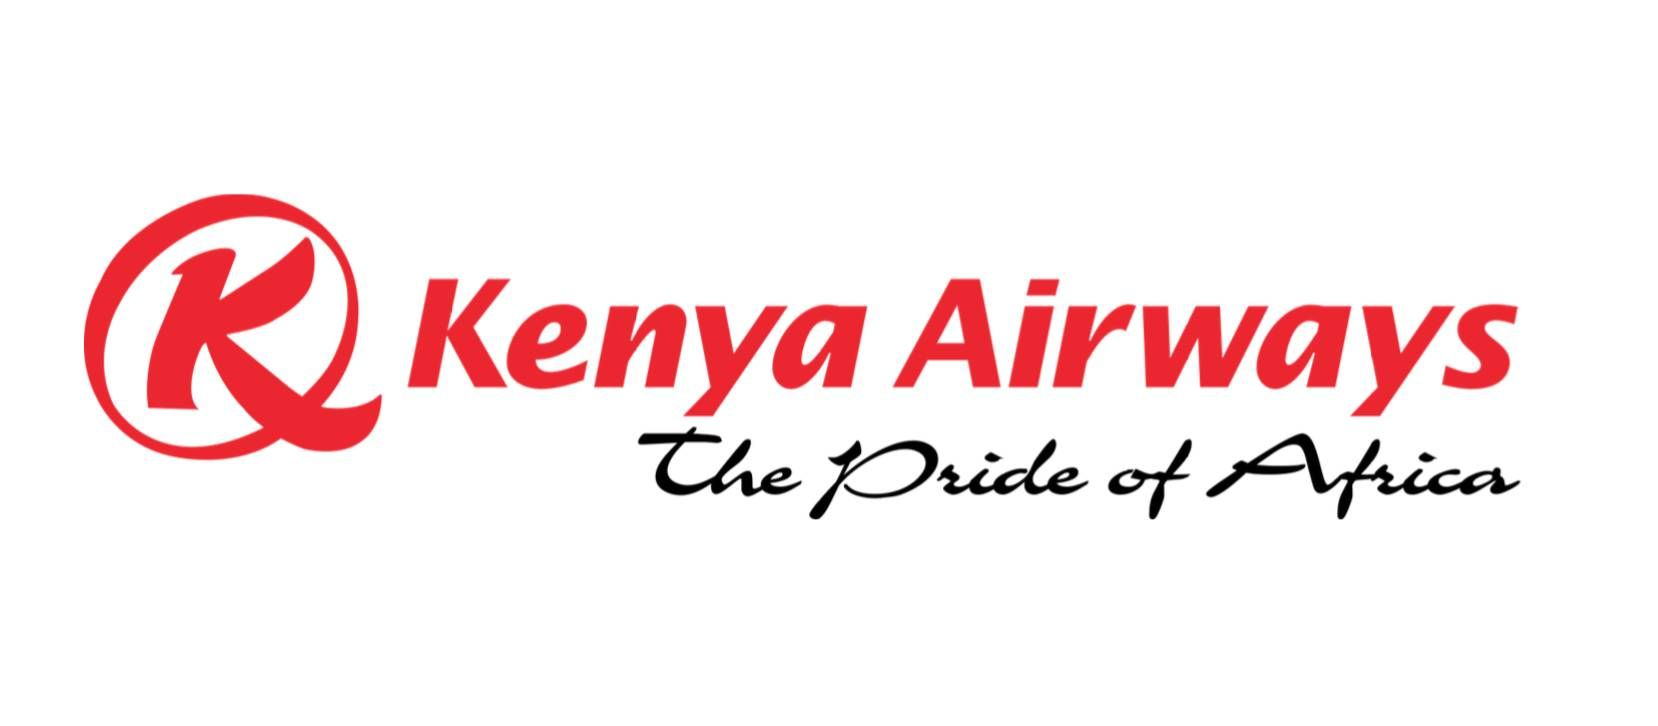 Classe Executiva da Kenya Airways no E190 – Nairobi para Zanzibar